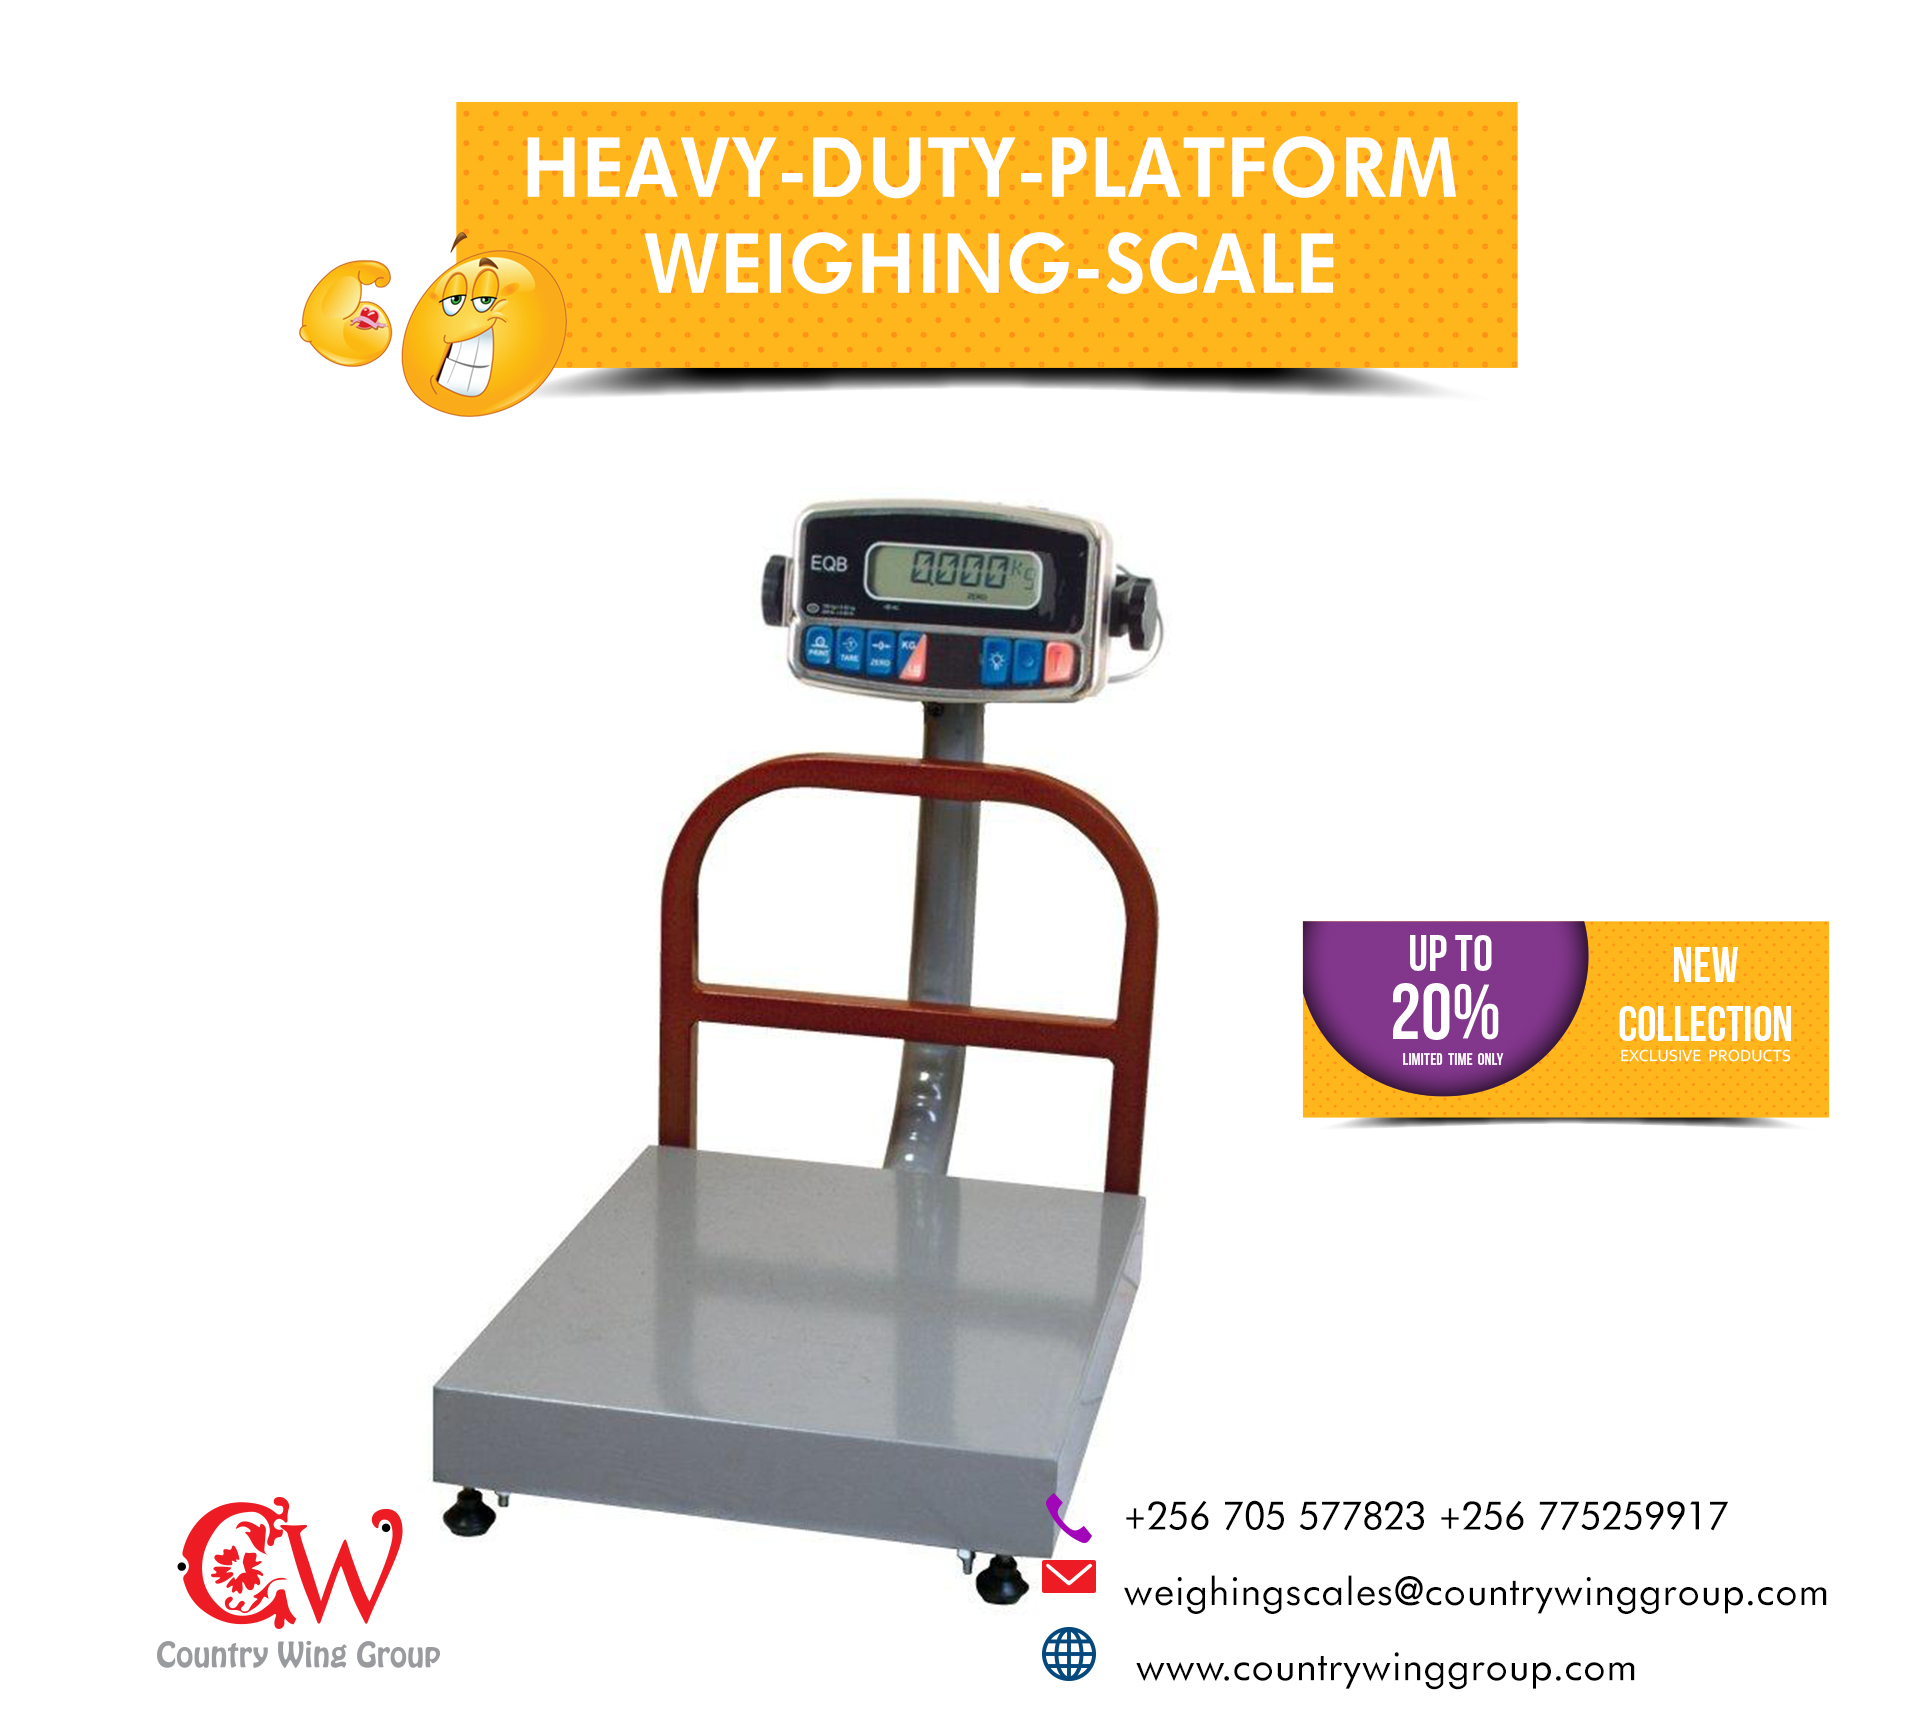 Calibration of weighing scales